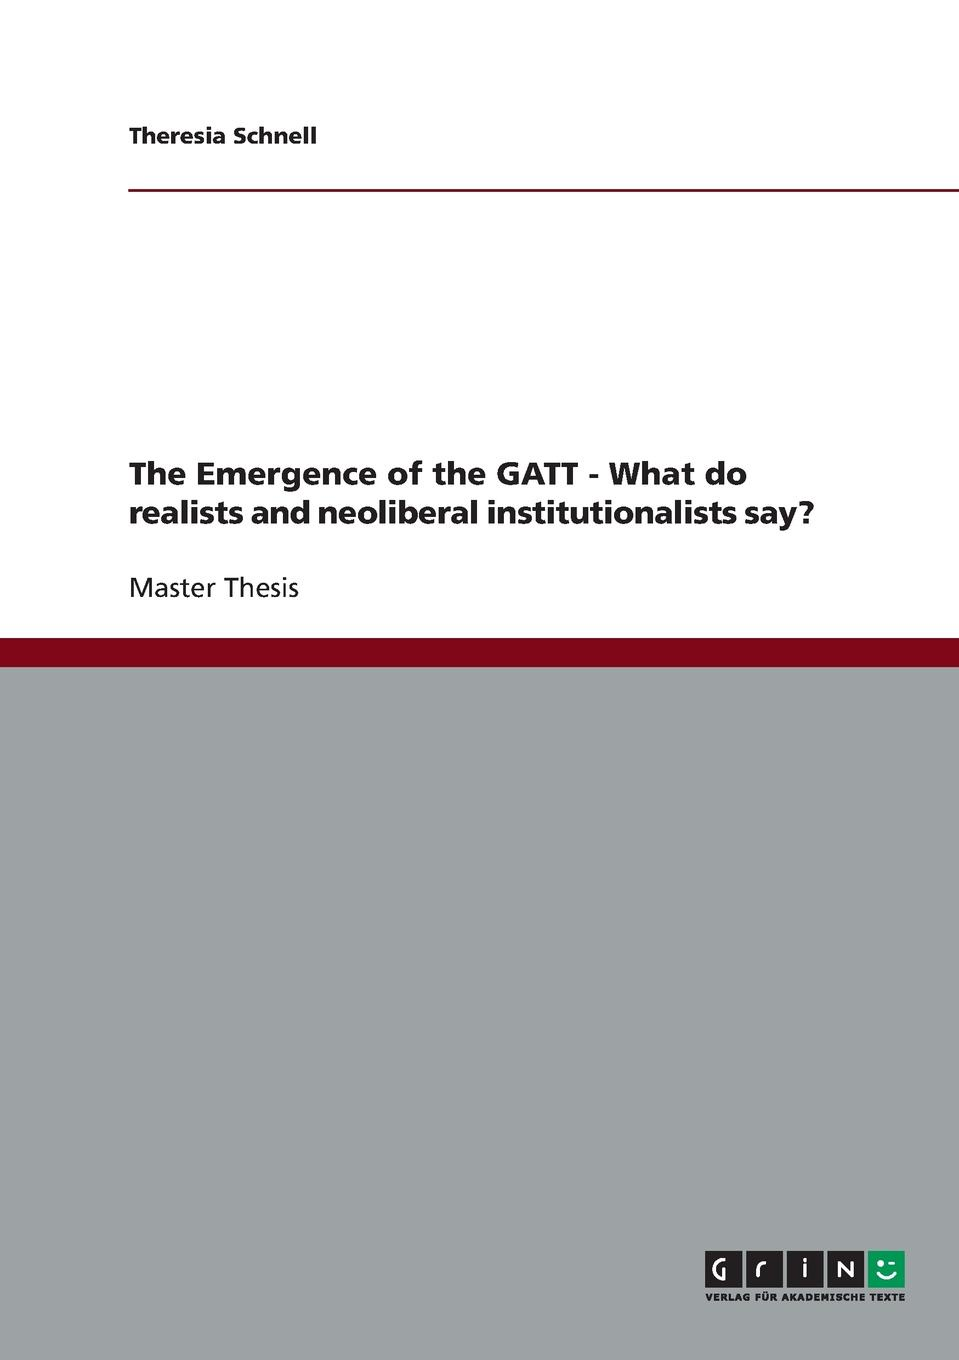 Theresia Schnell The Emergence of the GATT - What do realists and neoliberal institutionalists say. vishaal kishore ricardo s gauntlet economic fiction and the flawed case for free trade